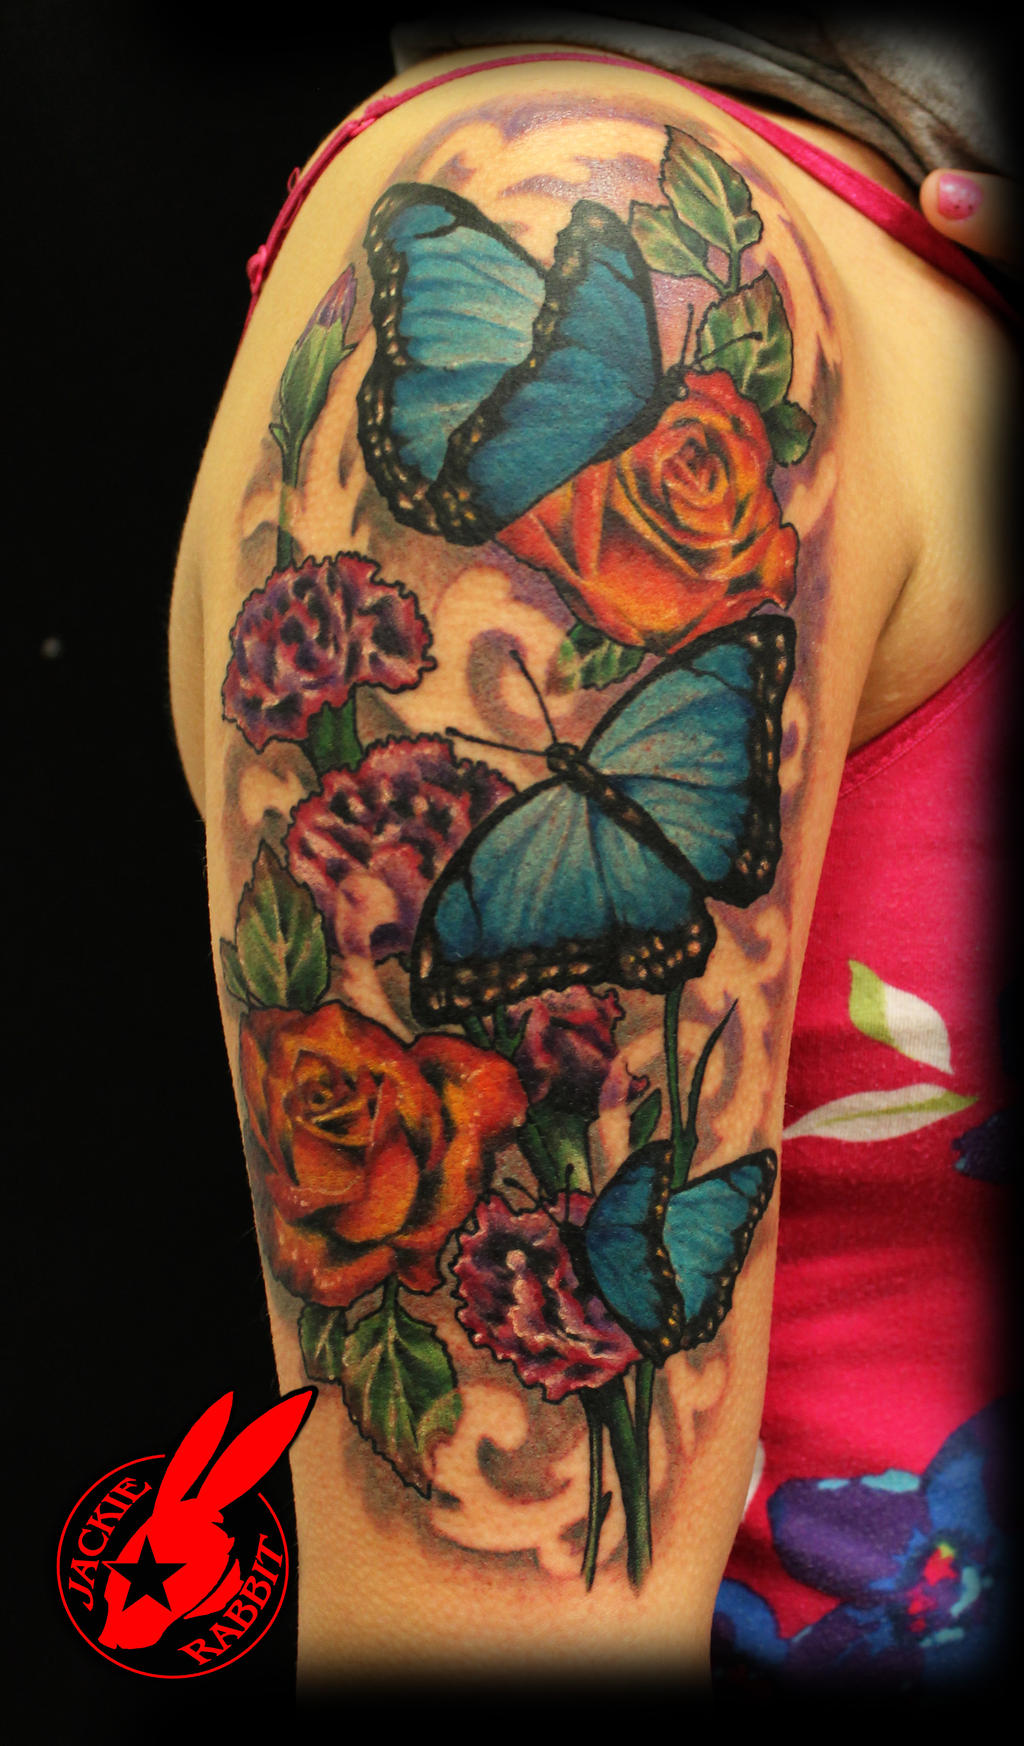 Tattoo gallery pictures and designs free tattoo designs traditional butterfly flower tattoo izmirmasajfo Choice Image